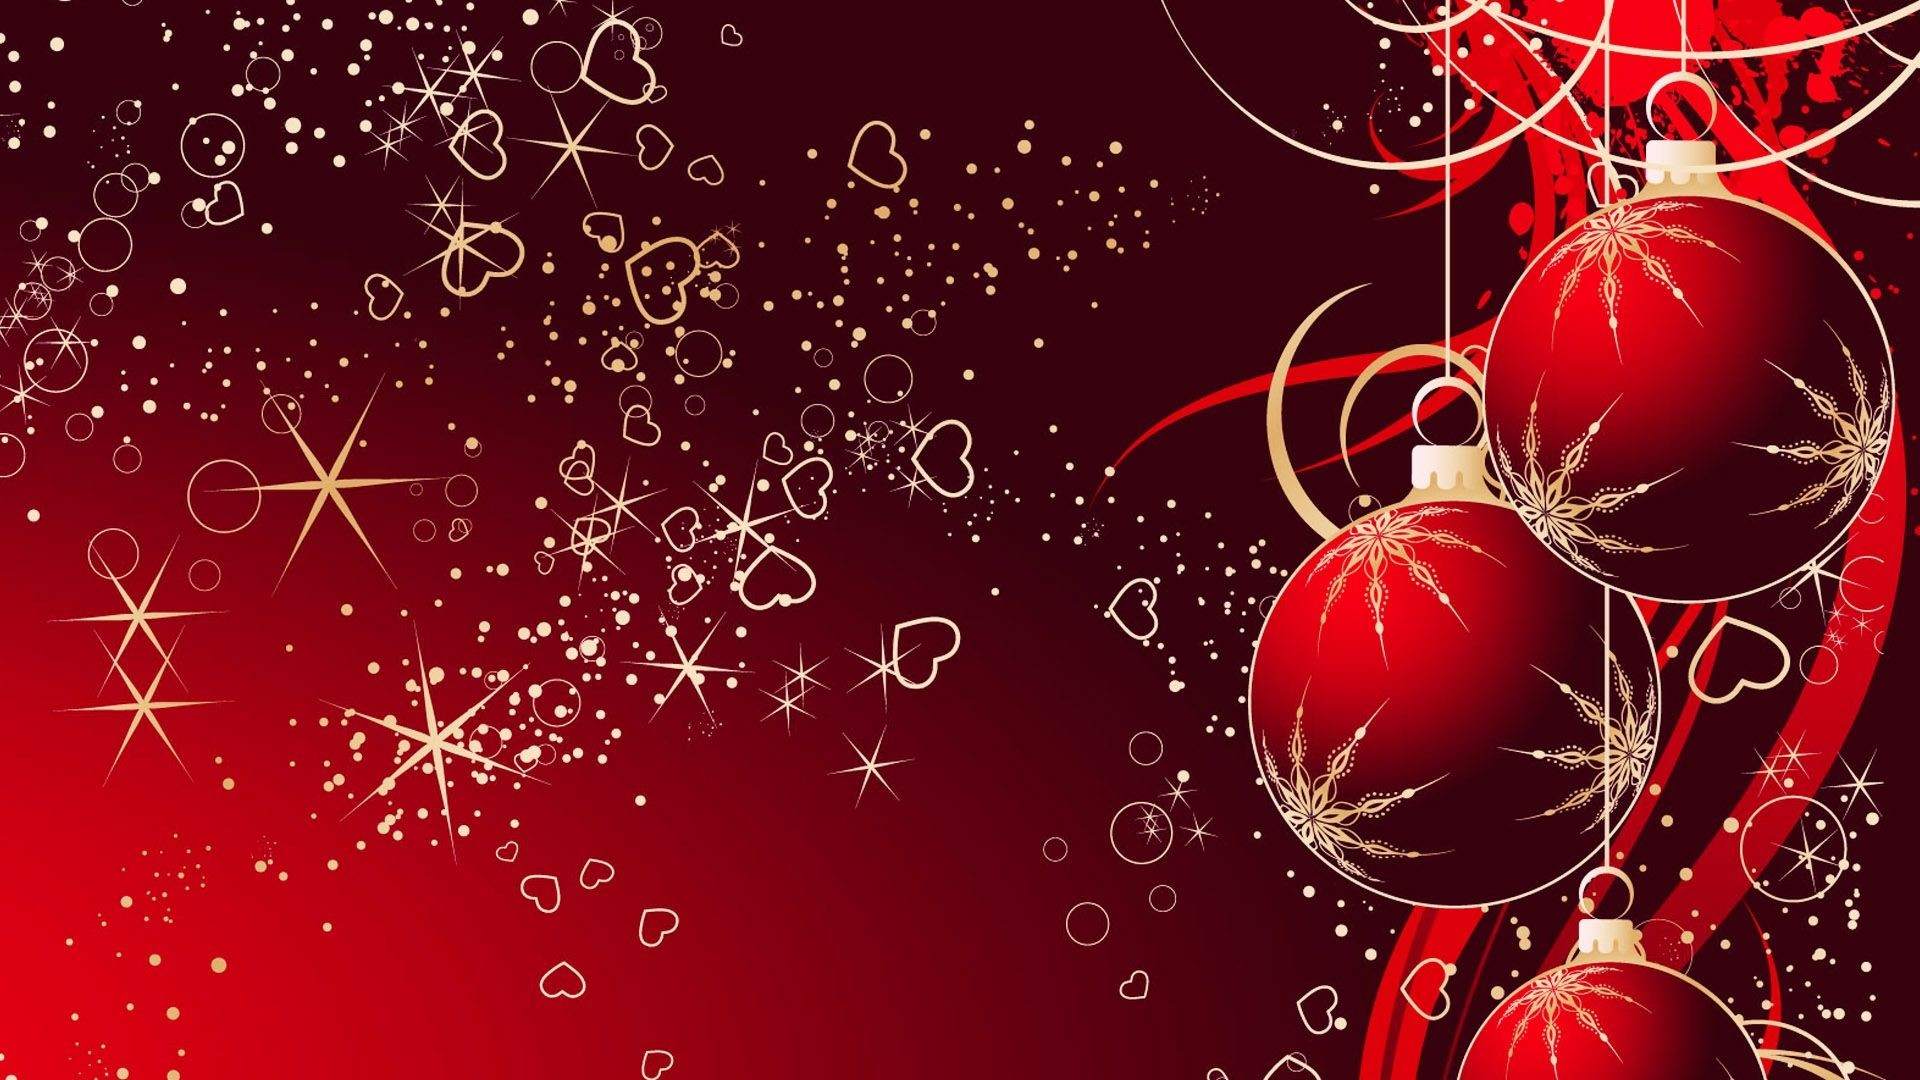 1920x1200 merry christmas background wallpaper merry christmas wallpaper 19